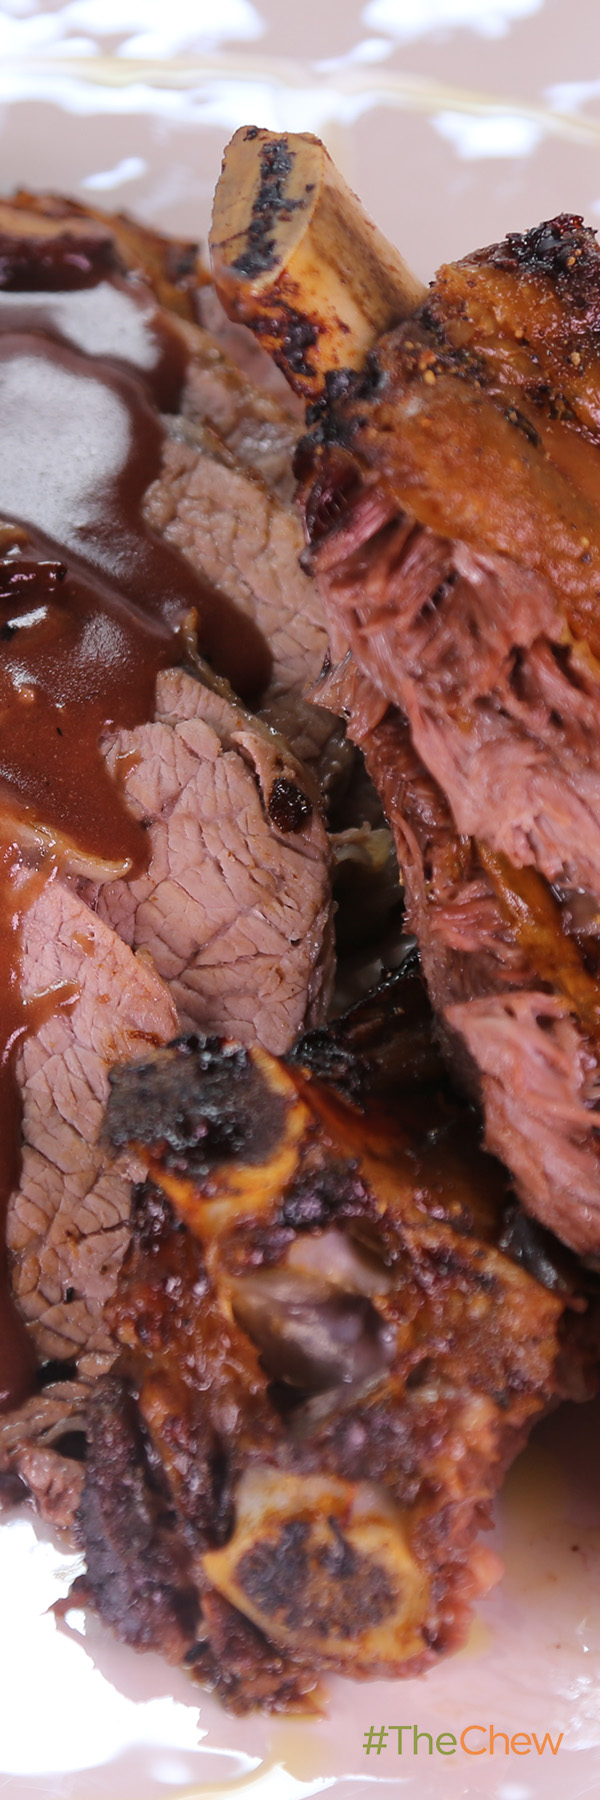 This Mouth Watering Rib Roast Is Sure To Be The Star Of The Show At Your Holiday Dinner Holiday Rib Roast With Rosema Recipes Yummy Dinners Holiday Roast Beef